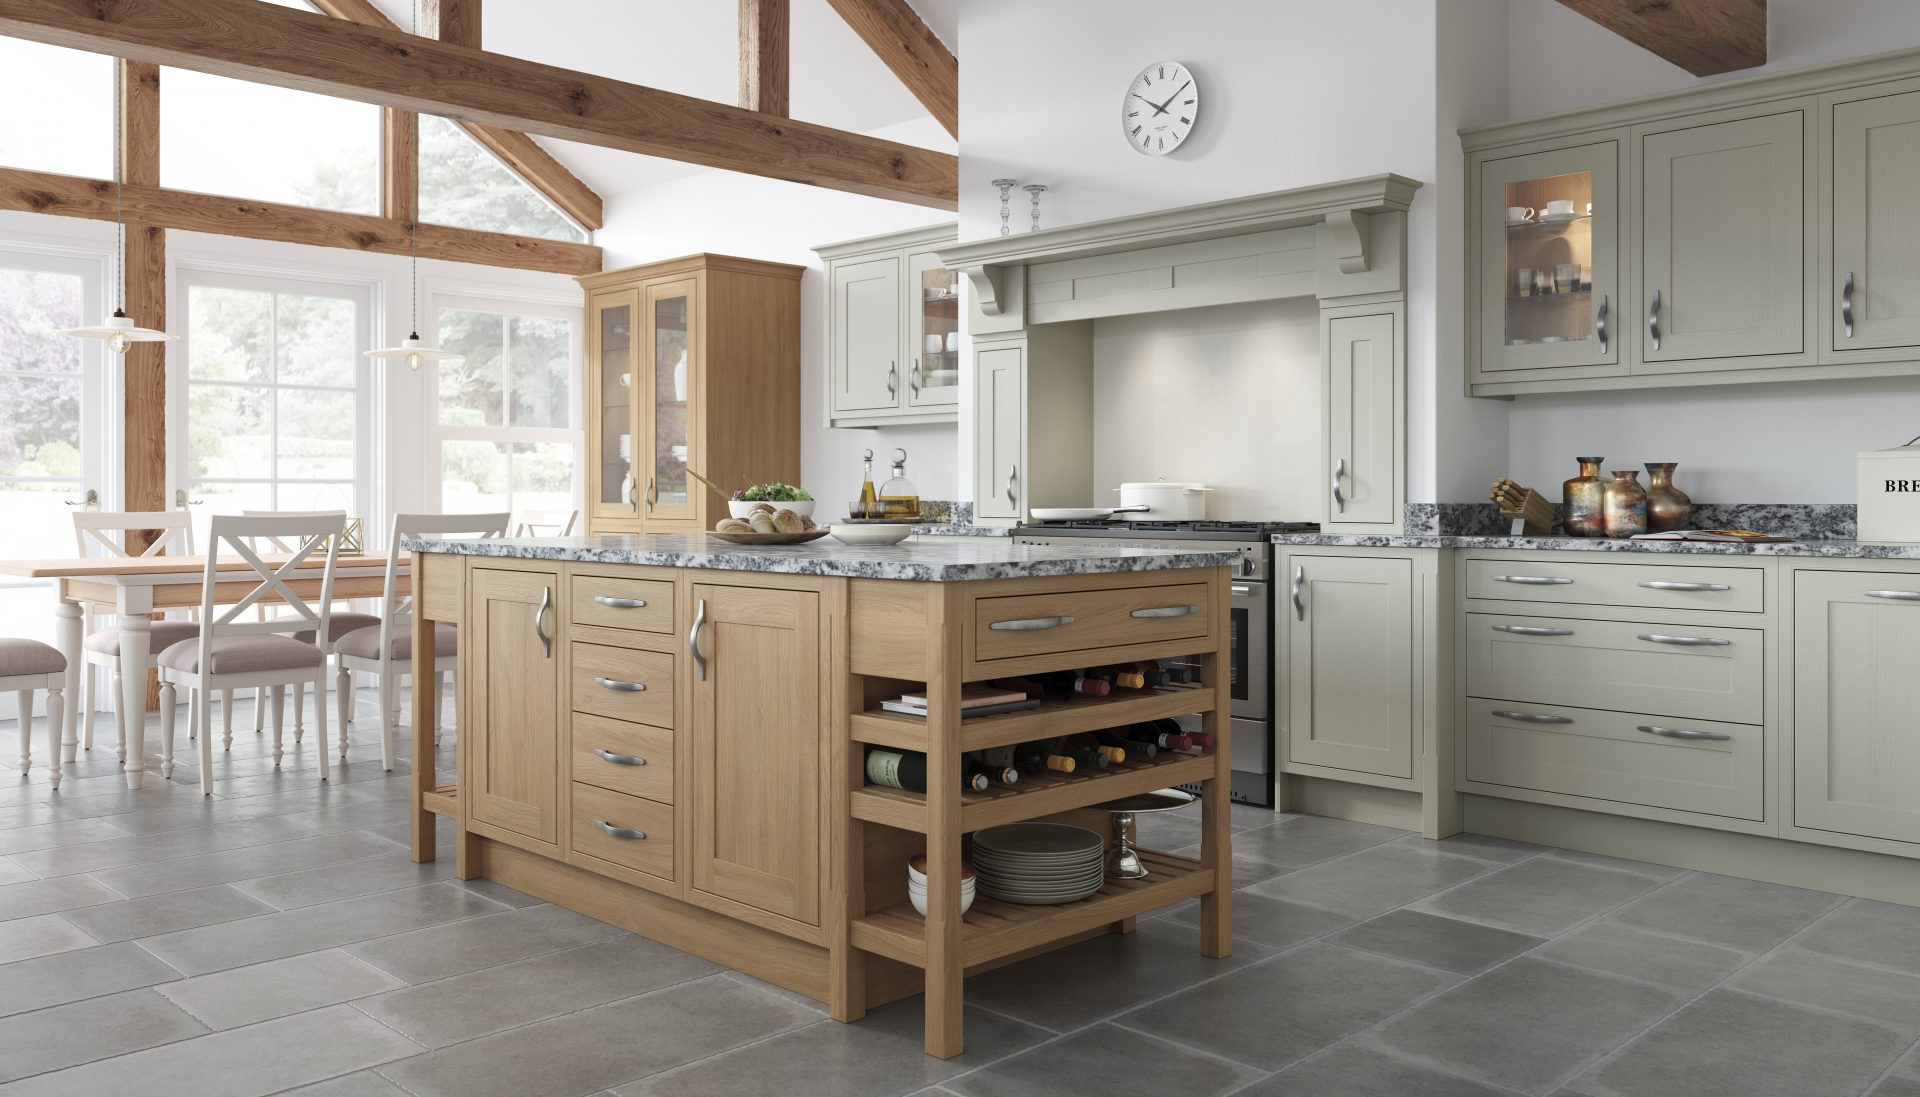 Shaker Shown in Light Fern and Natural Oak